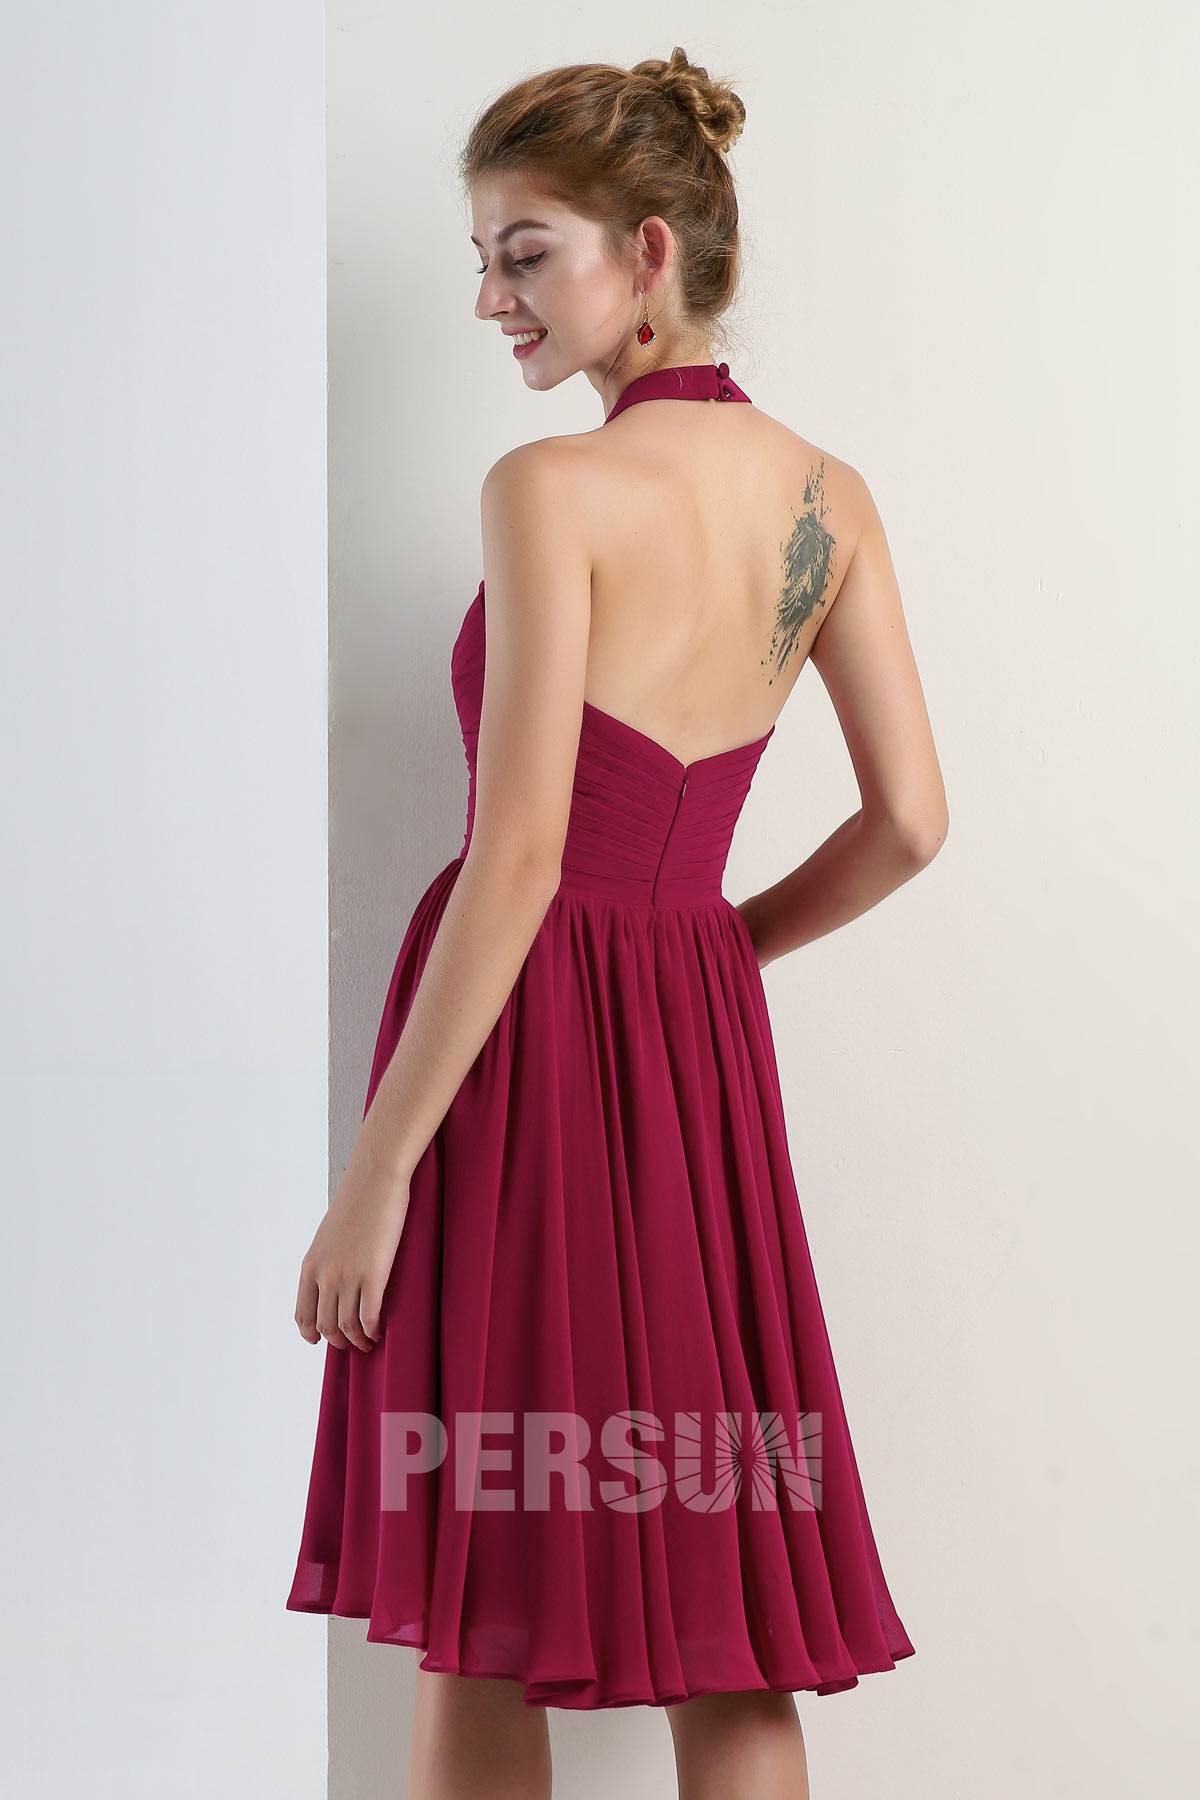 6307bbefb7be5 Simple petite robe fuchsia col halter empire pour cocktail mariage ...